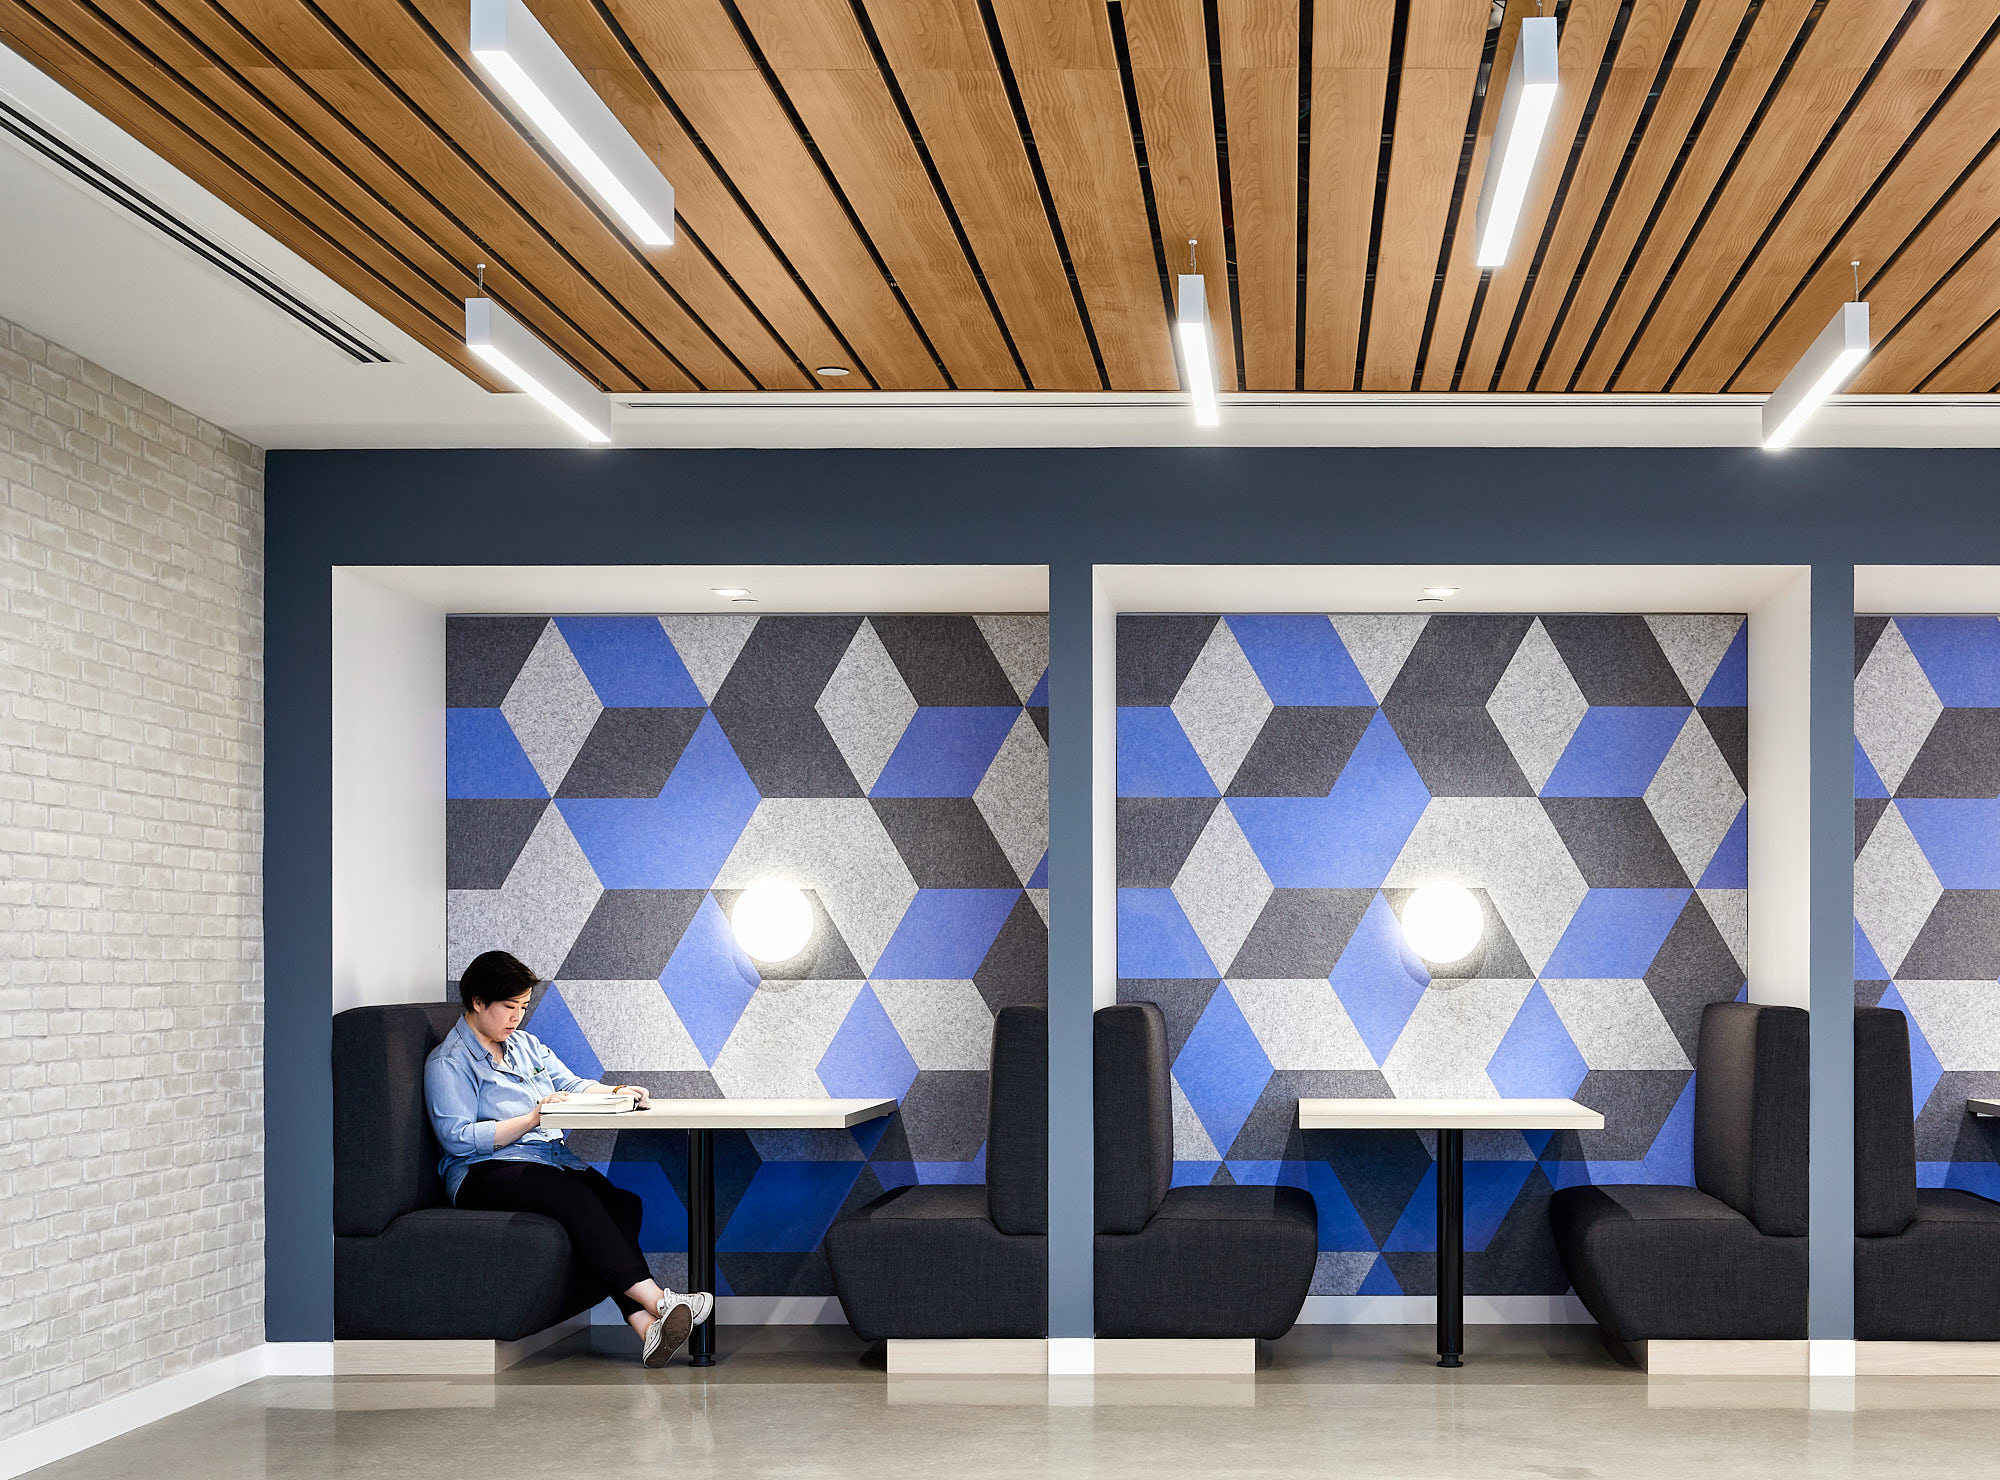 020-BH Architects PCL Offices